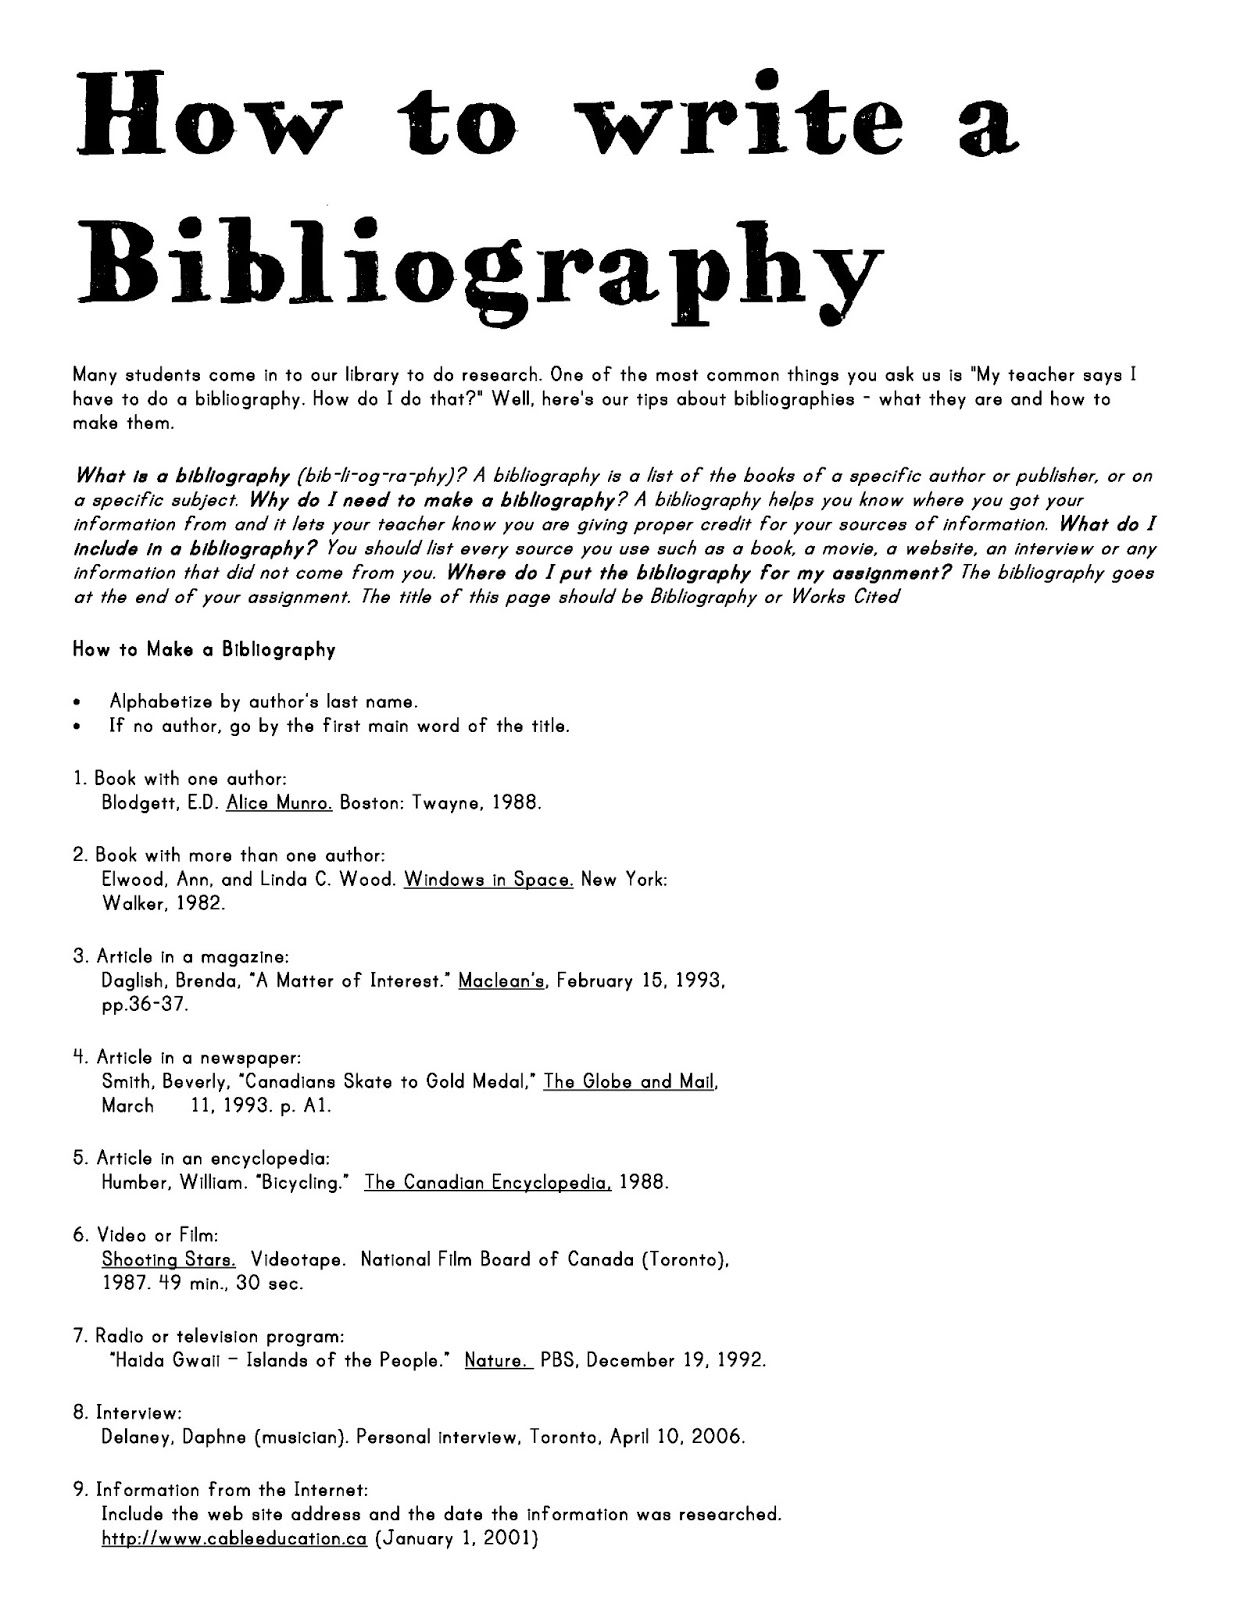 make bibliography term paper